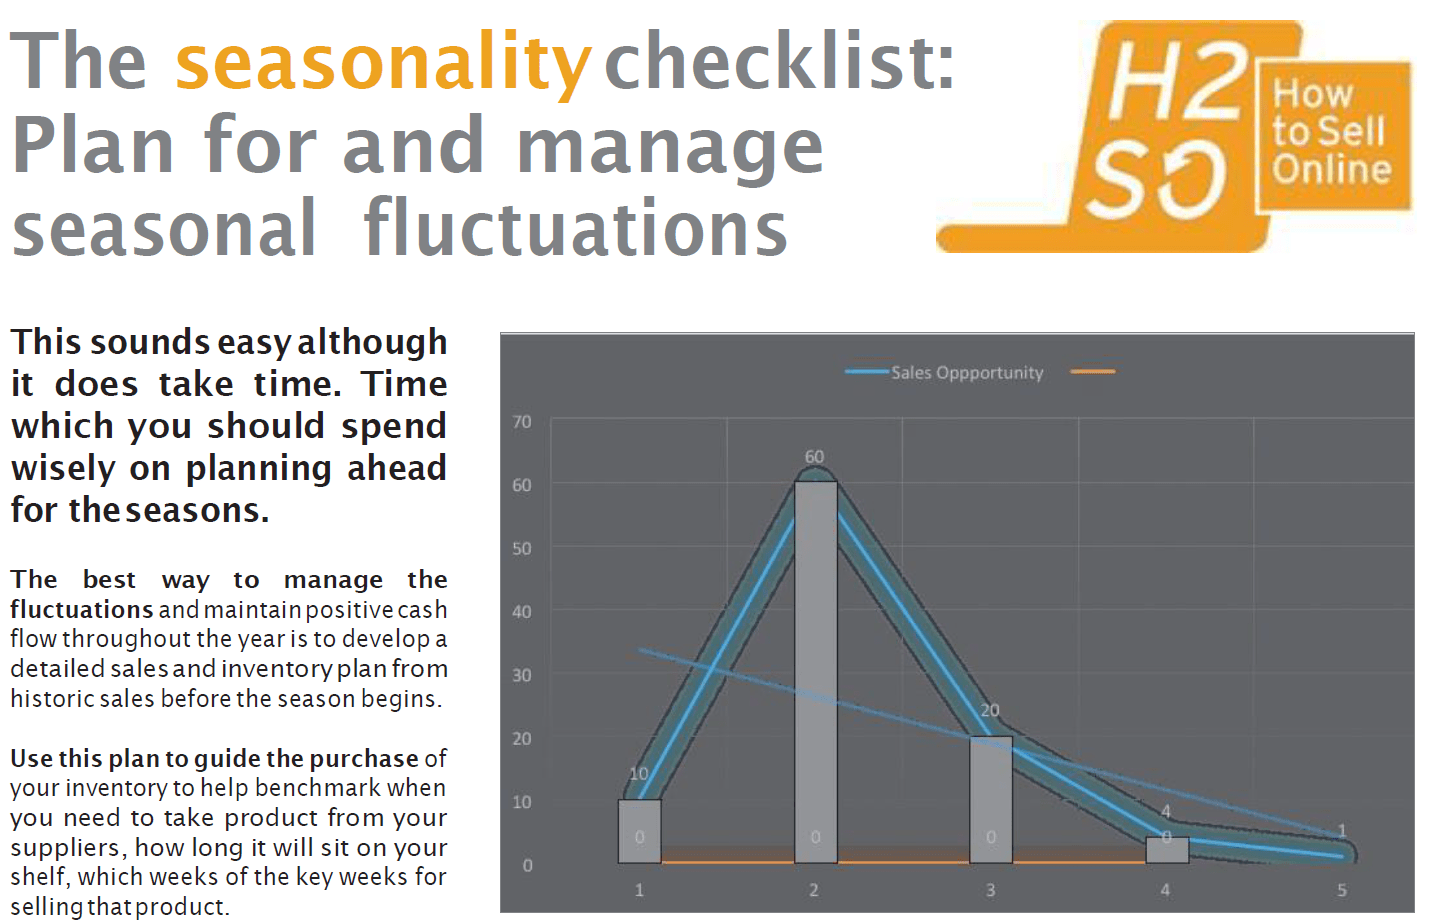 The seasonality checklist: Plan for and manage seasonal fluctuations